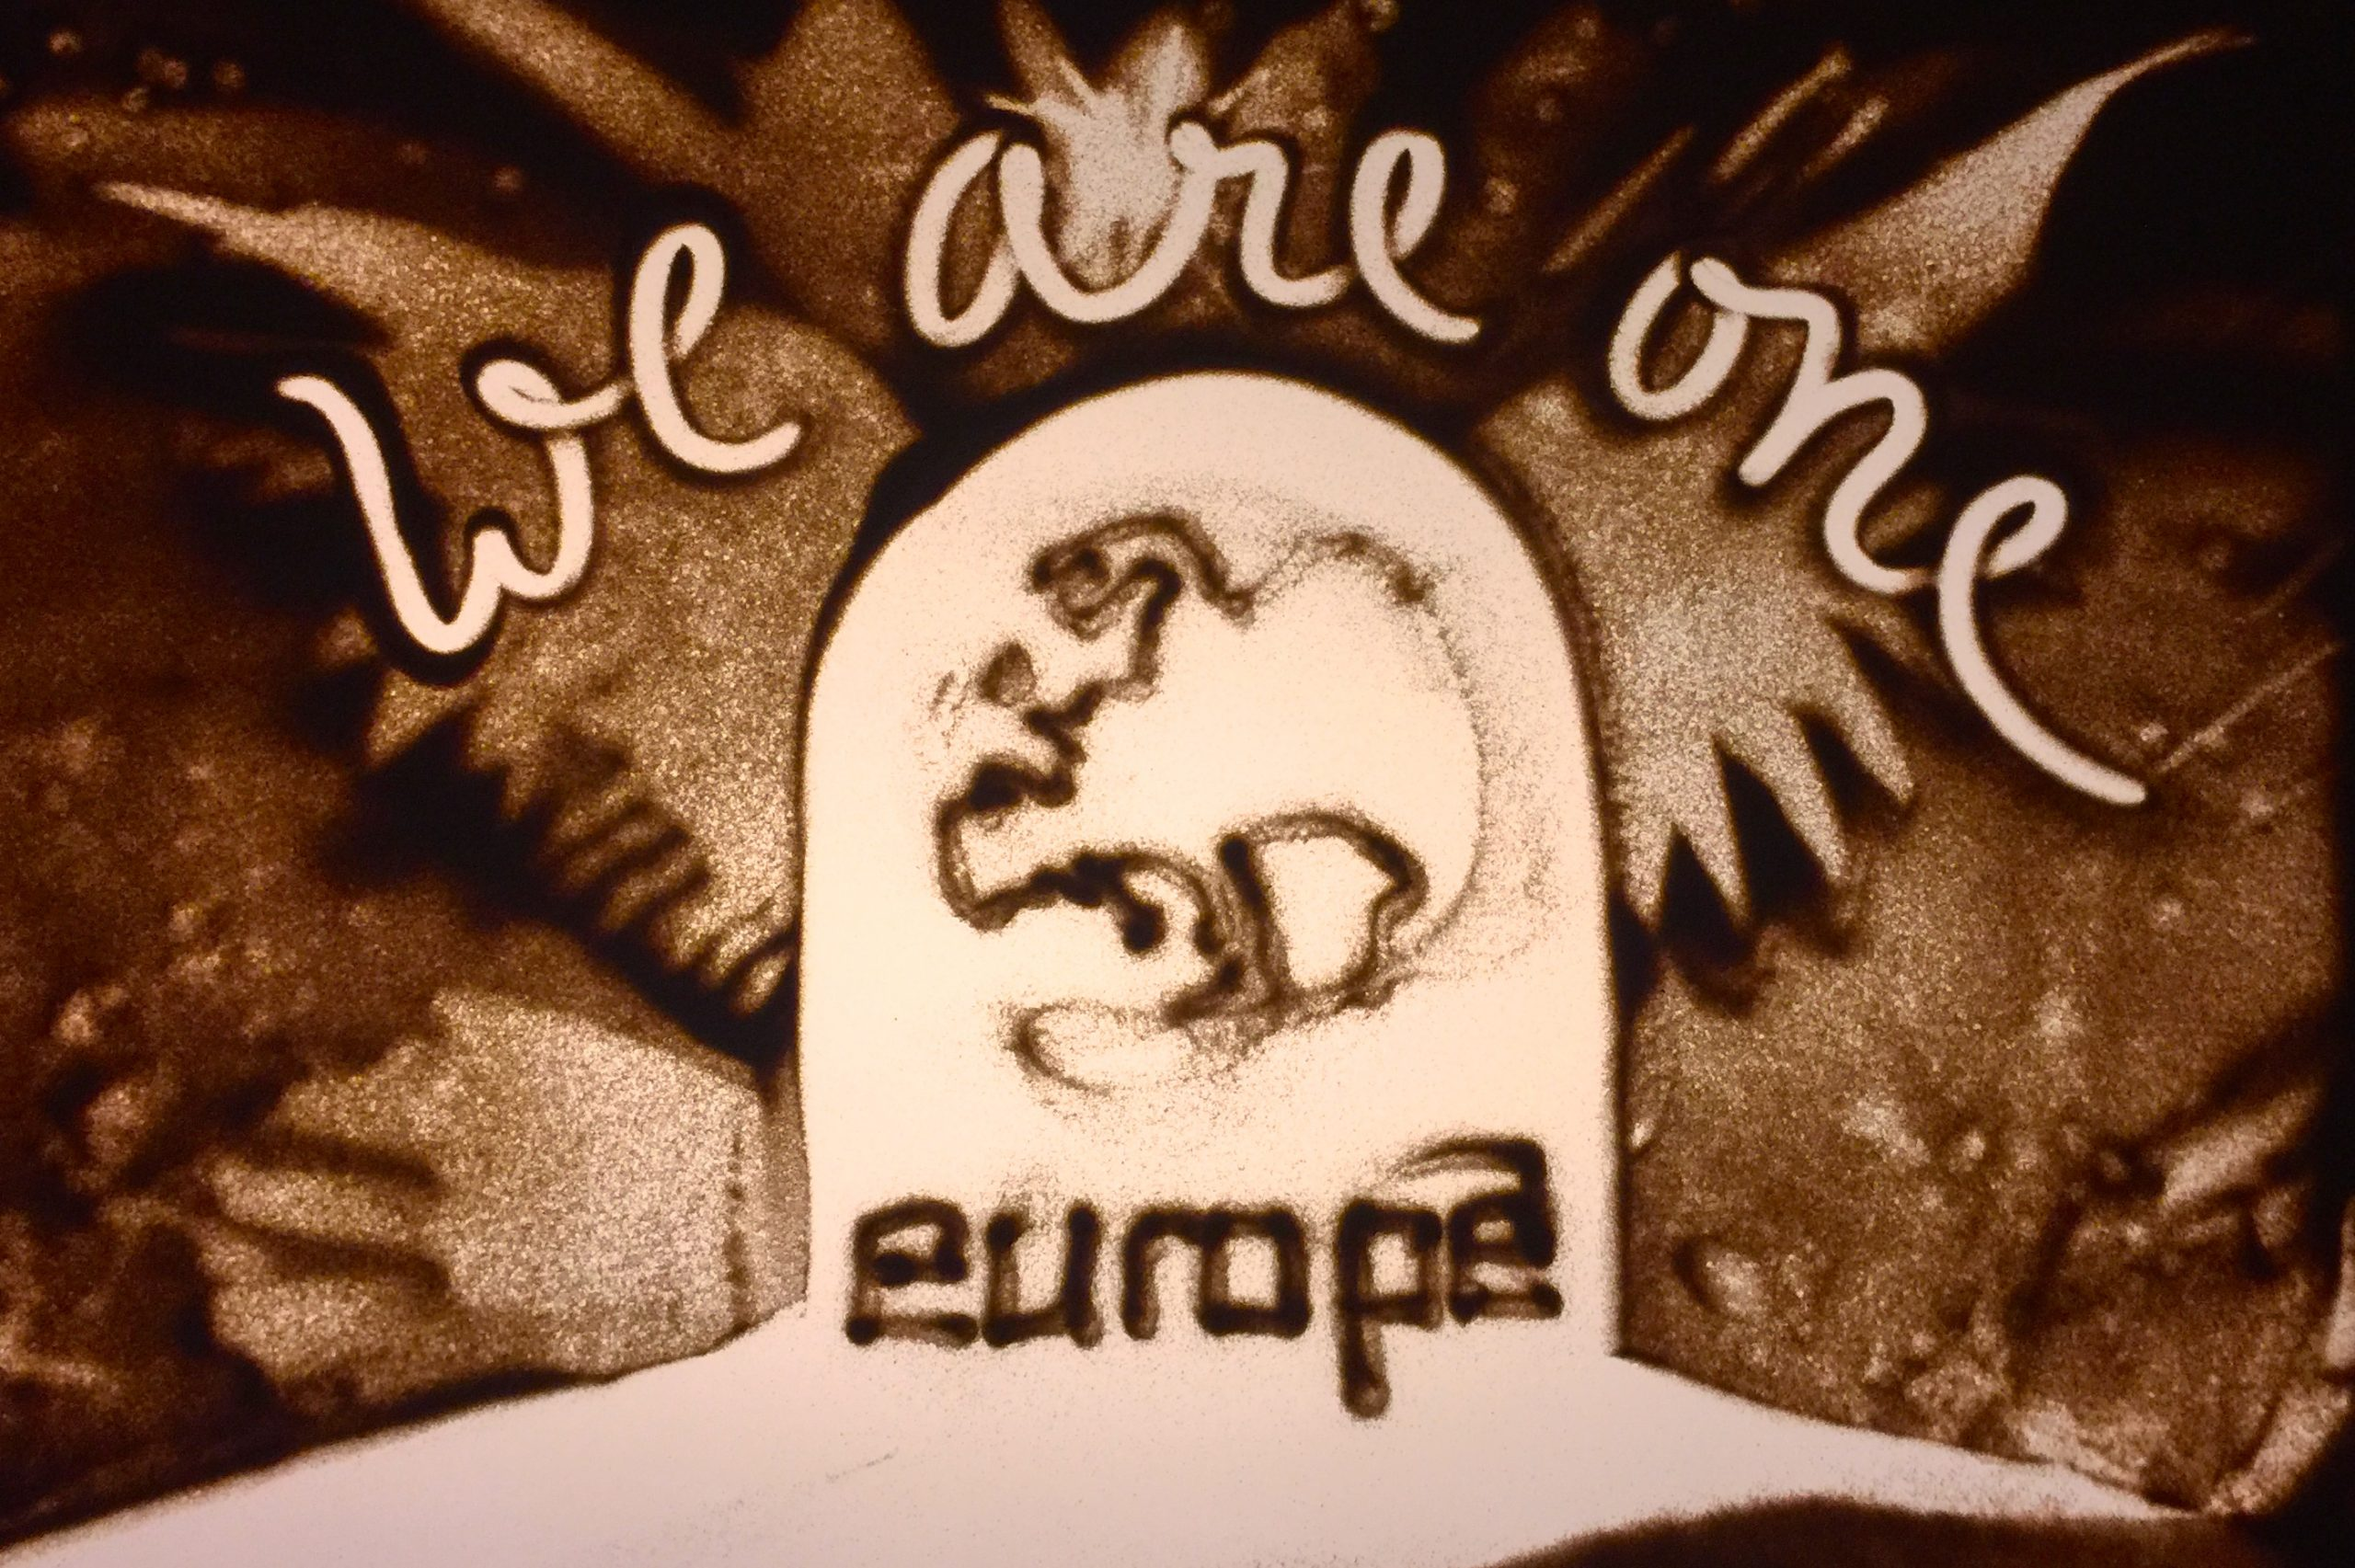 We are one - Sandmalerei